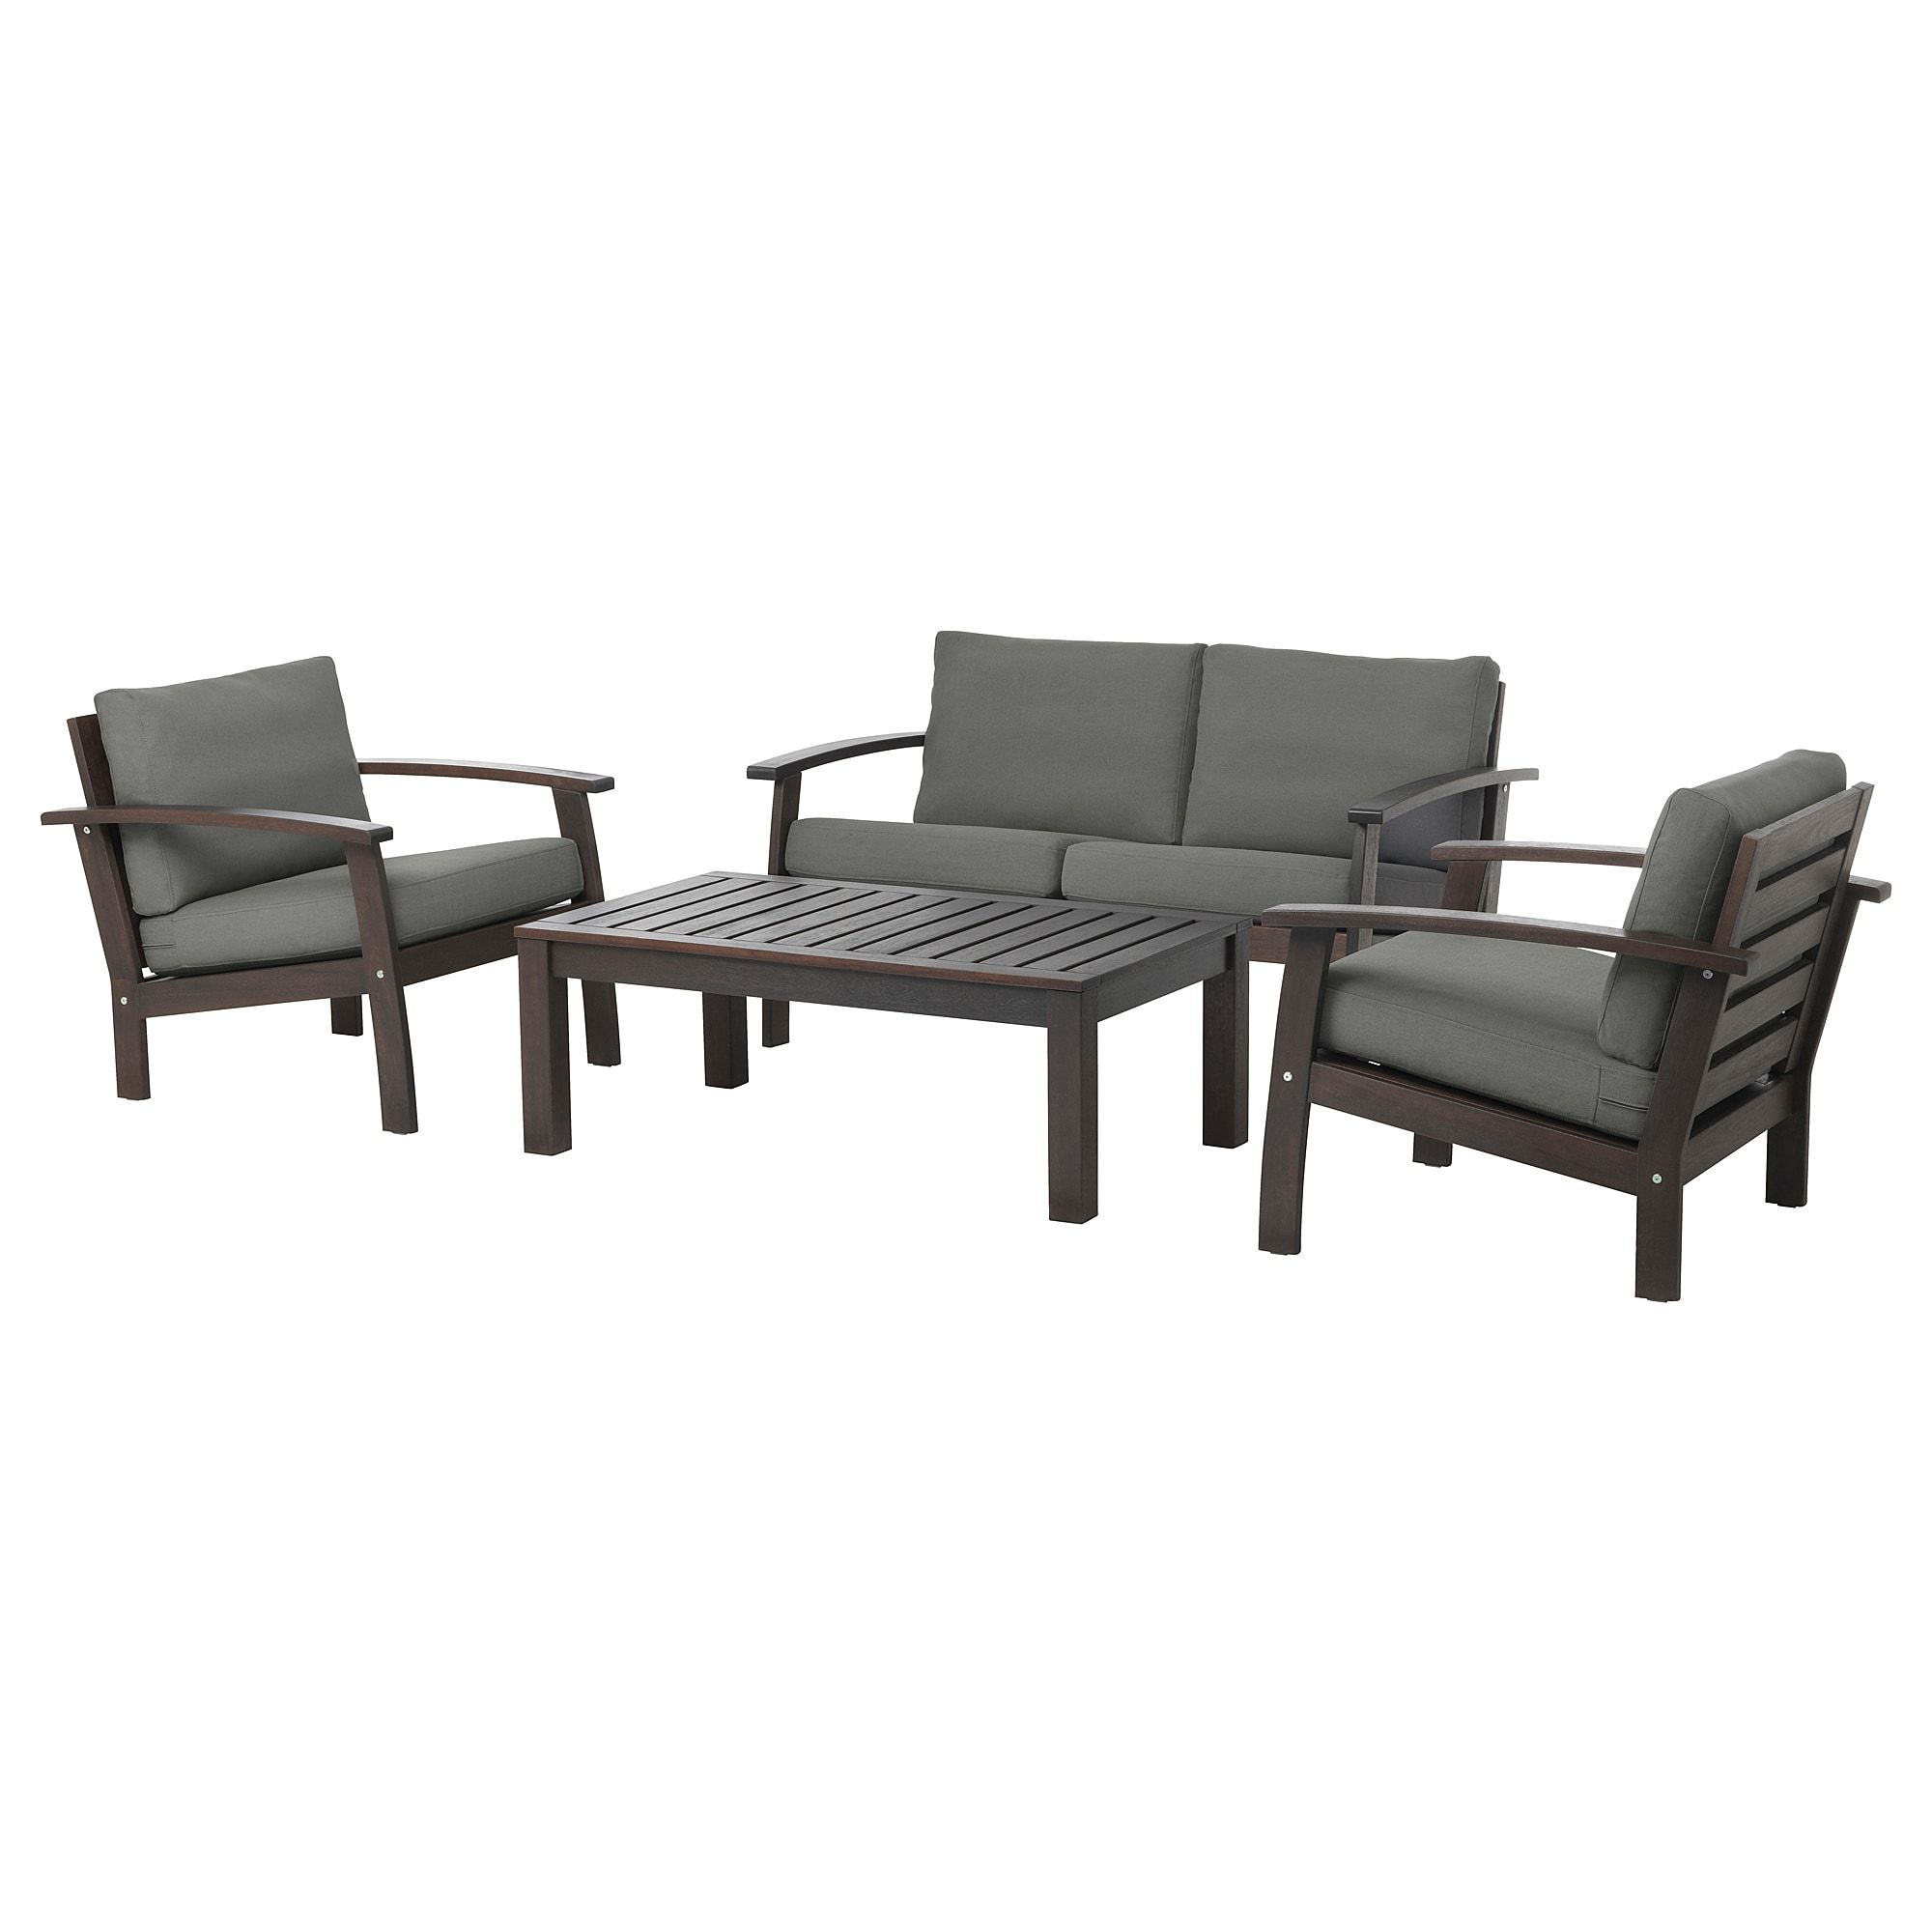 Kloven 4 Seat Conversation Set Outdoor Brown Stained Froson